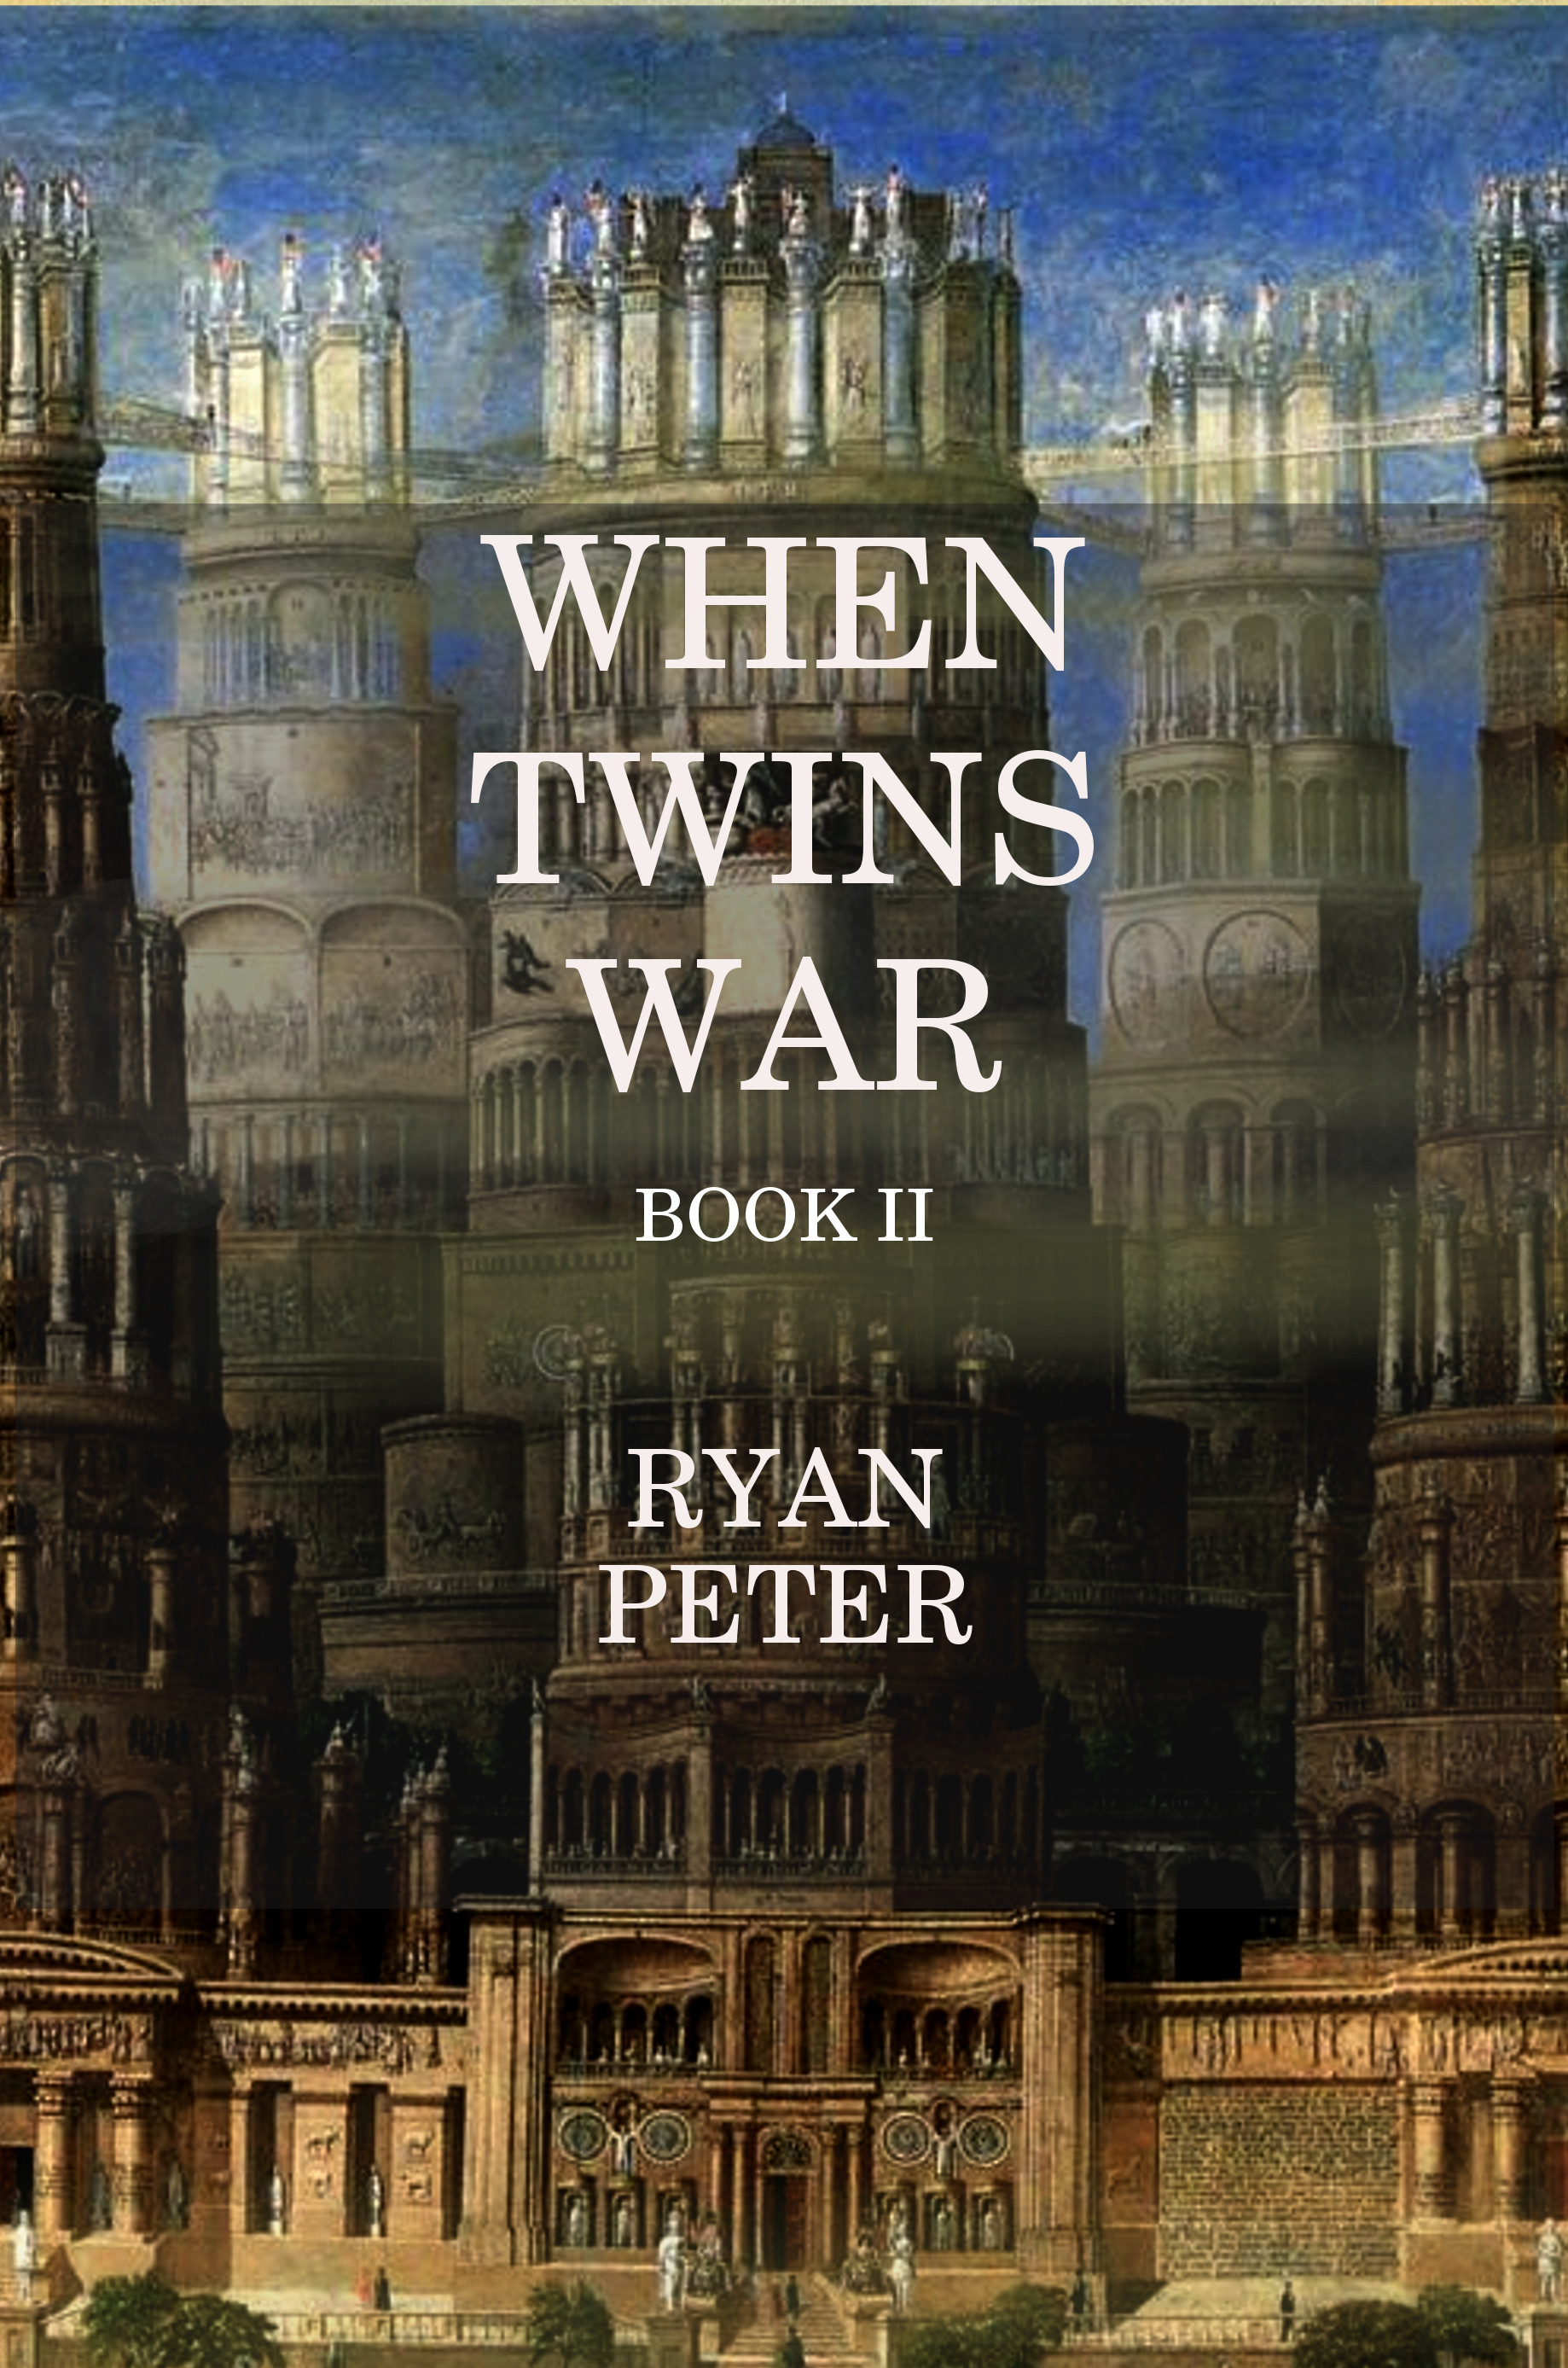 When Twins War: Book II